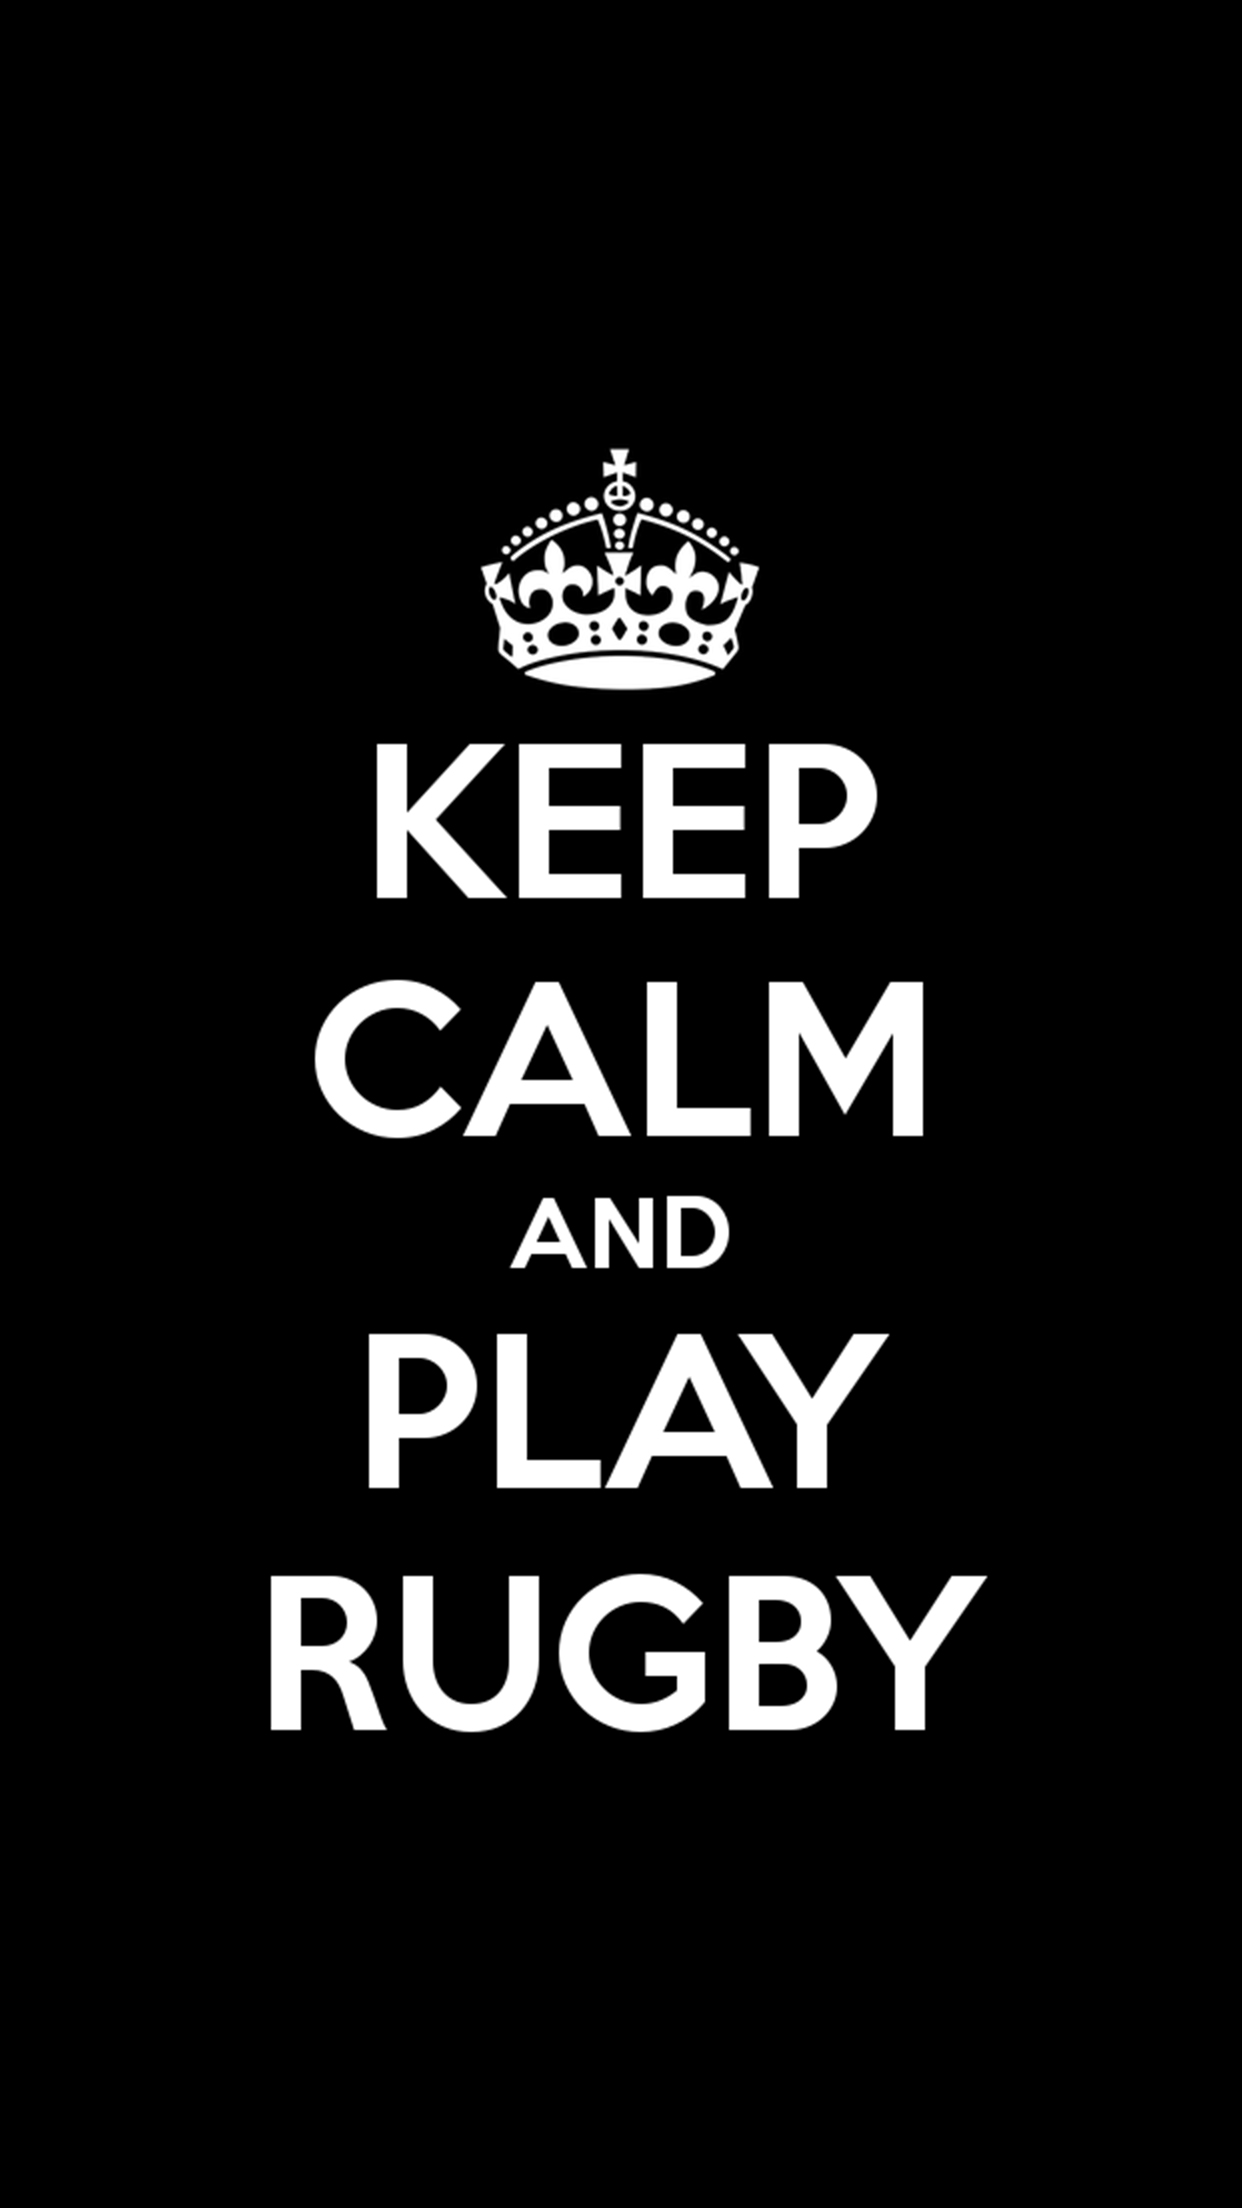 Black Ops Wallpaper Hd Rugby Keep Calm Wallpaper For Iphone X 8 7 6 Free